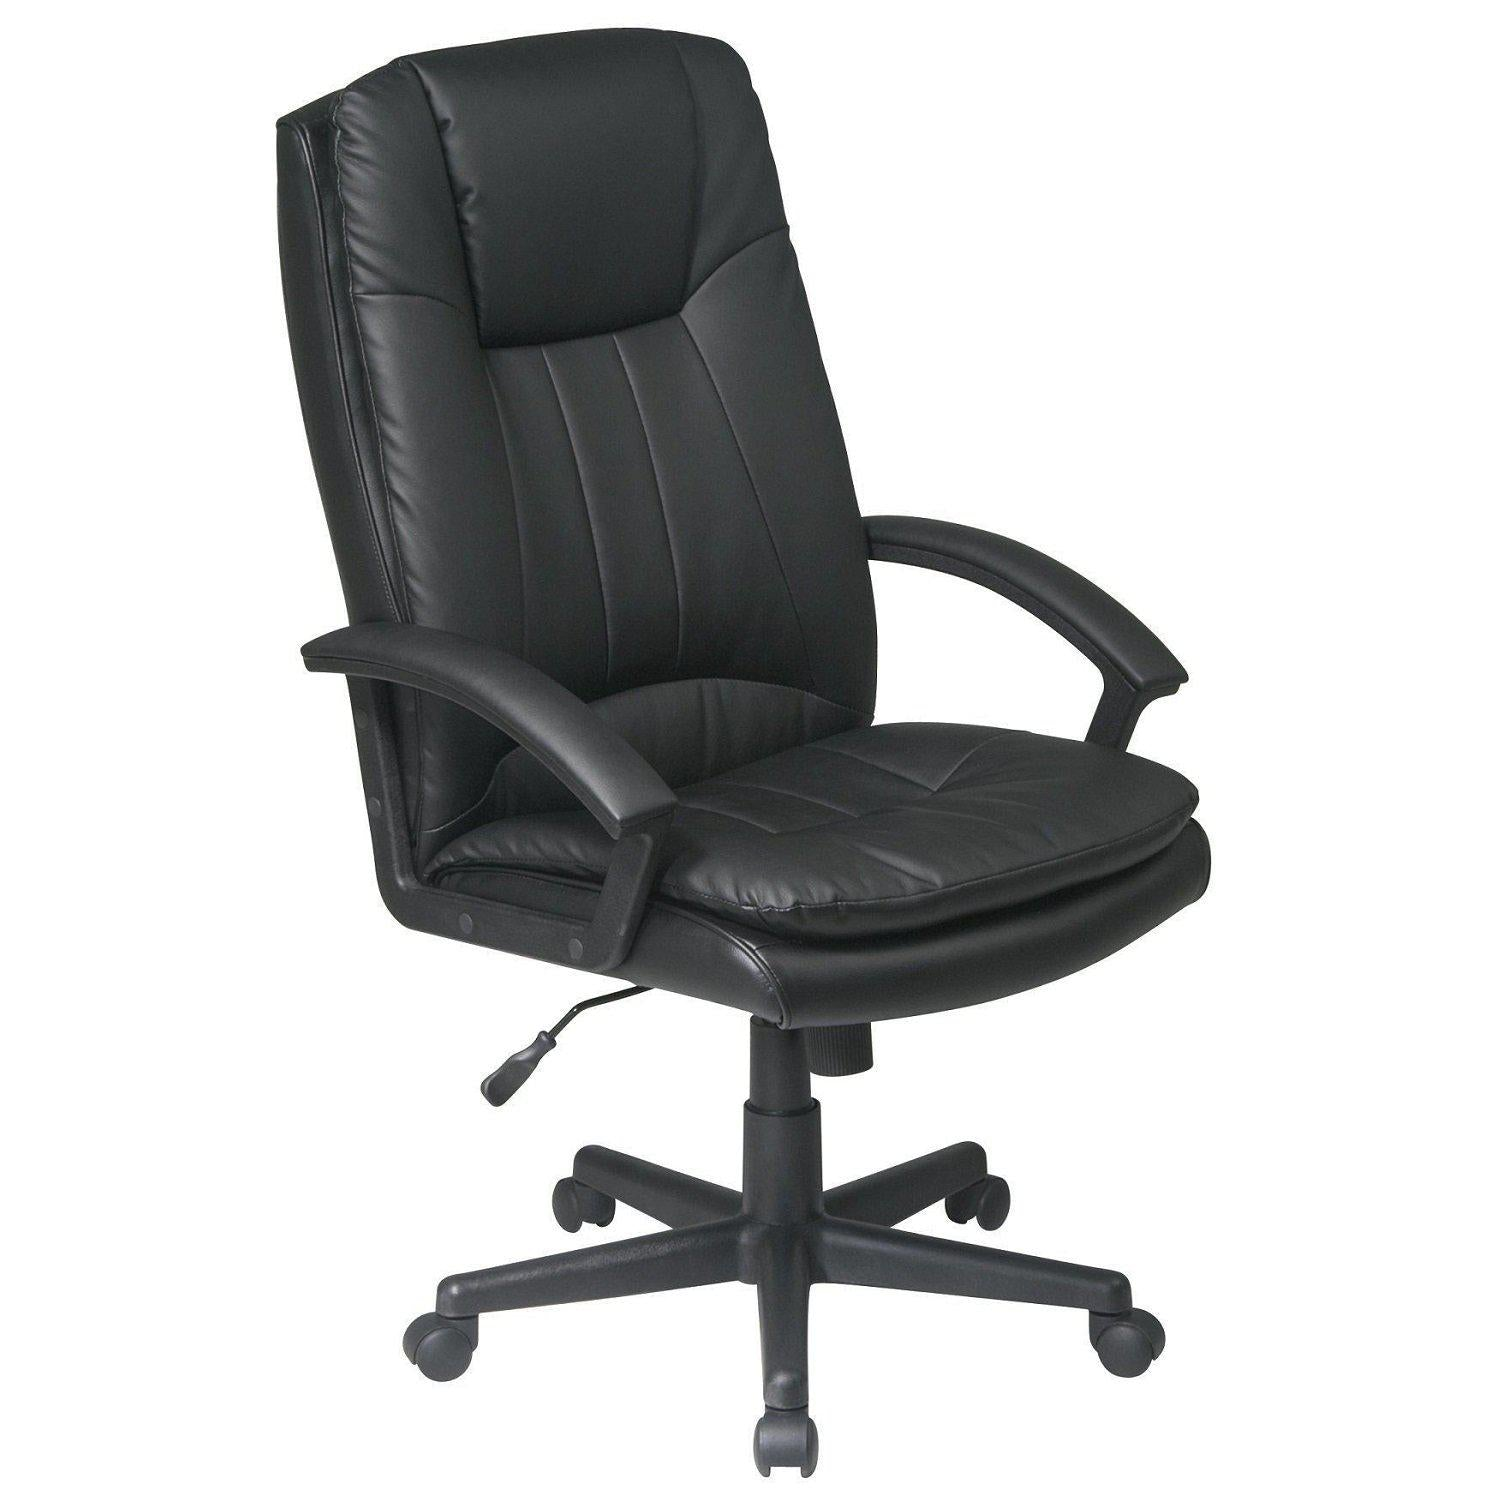 Deluxe High Back Bonded Leather Executive Chair